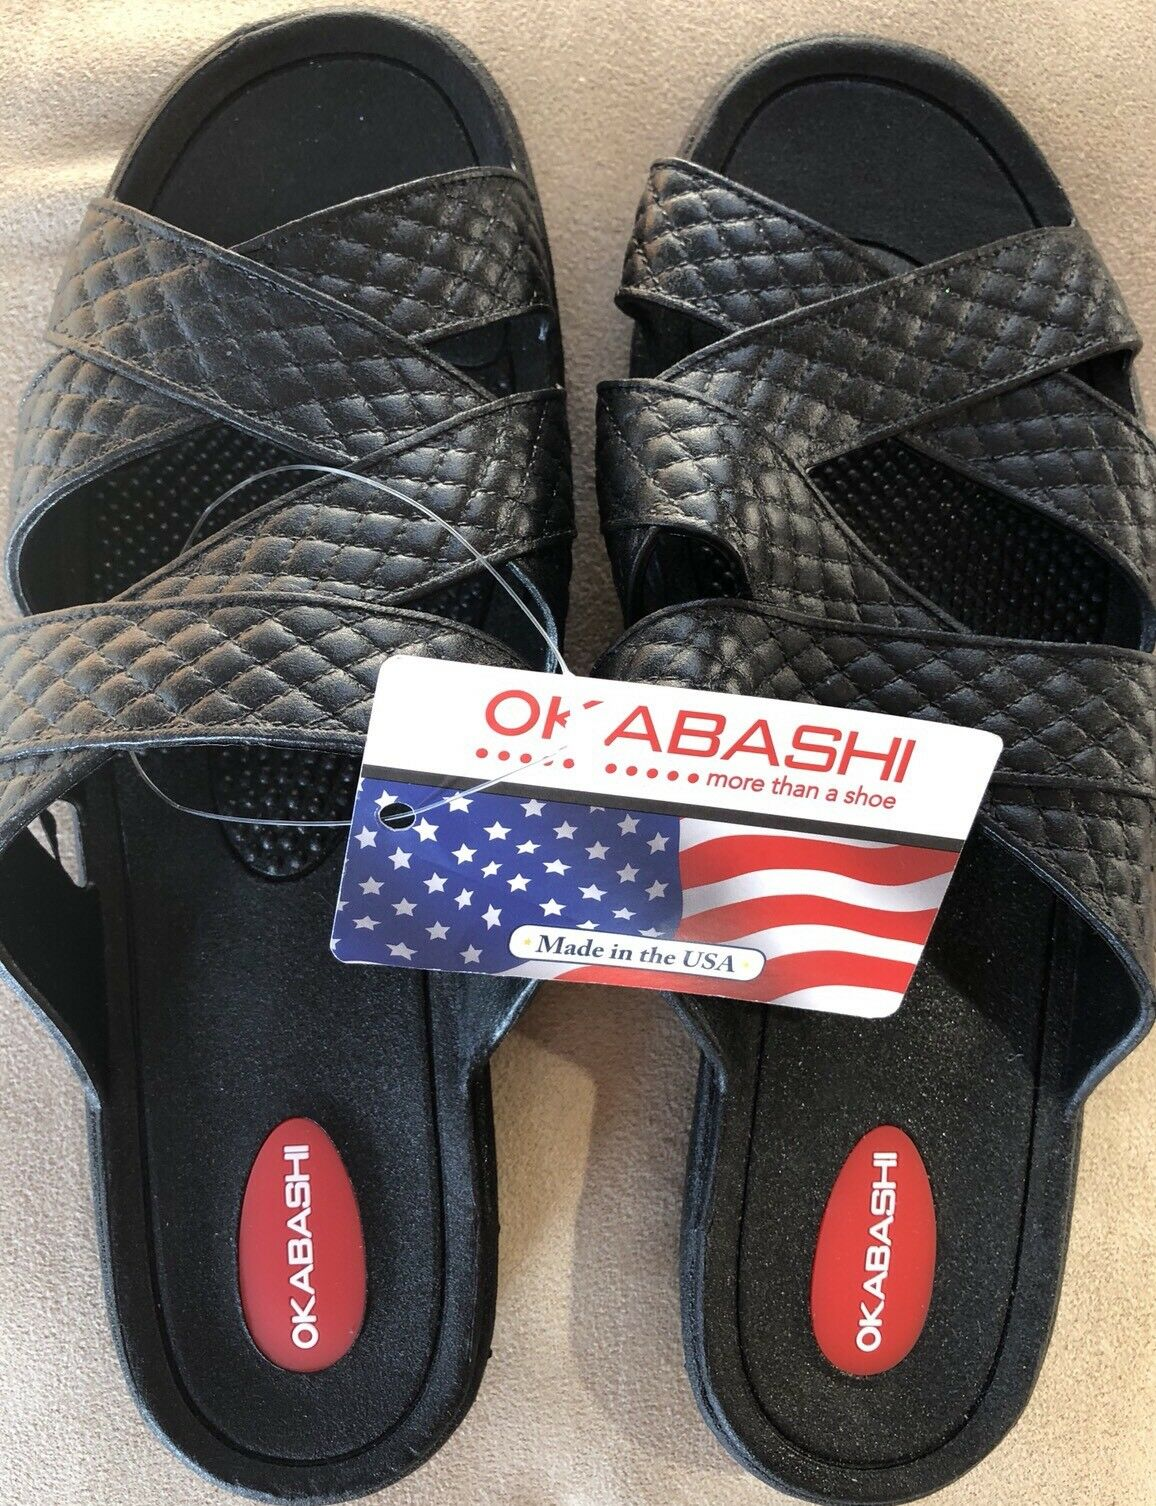 Okabashi Women Cross Strap Black Sandal M Slides Ergonomic Strappy Size M Sandal 6.5-7.5 be8fd0